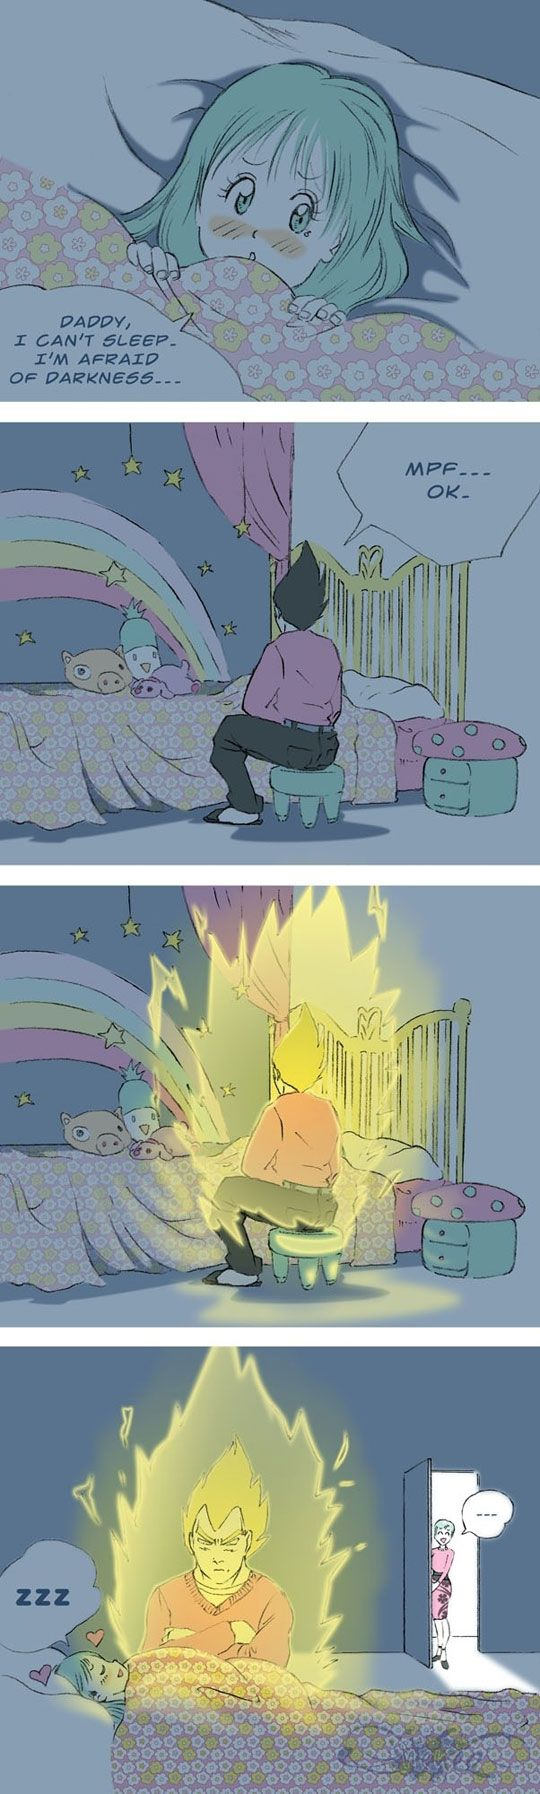 OH BOY. Vegetas gonna be a good father for once!